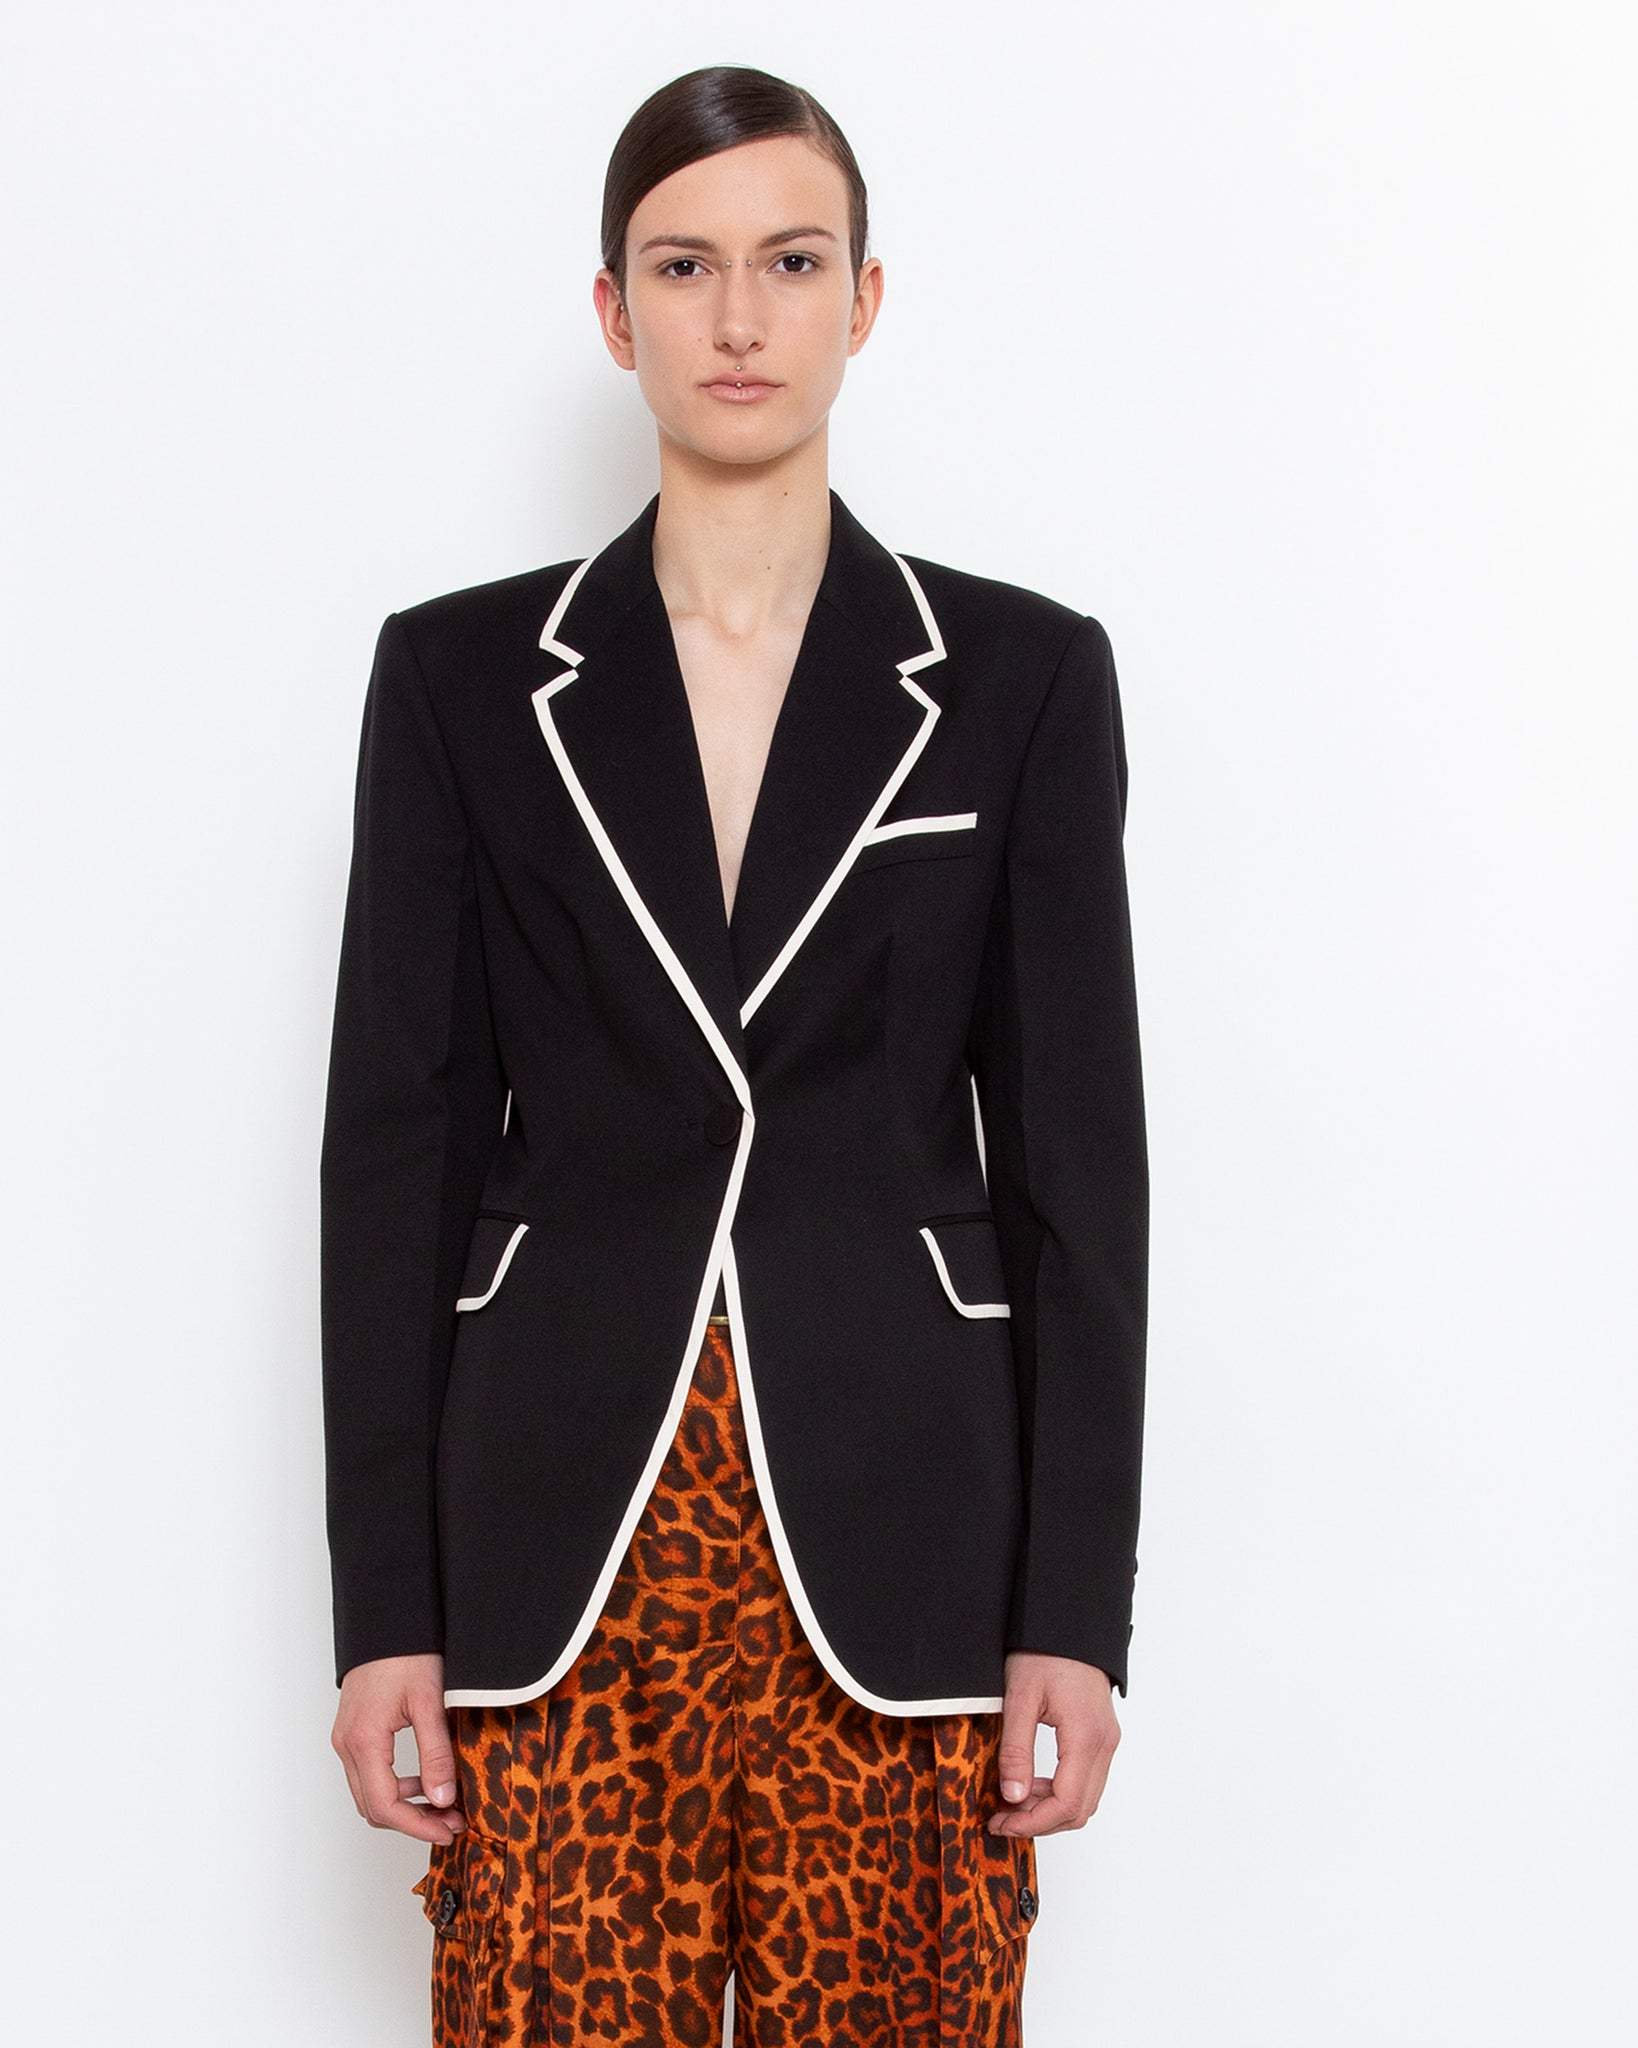 BACHELORE TAPE fitted blazer